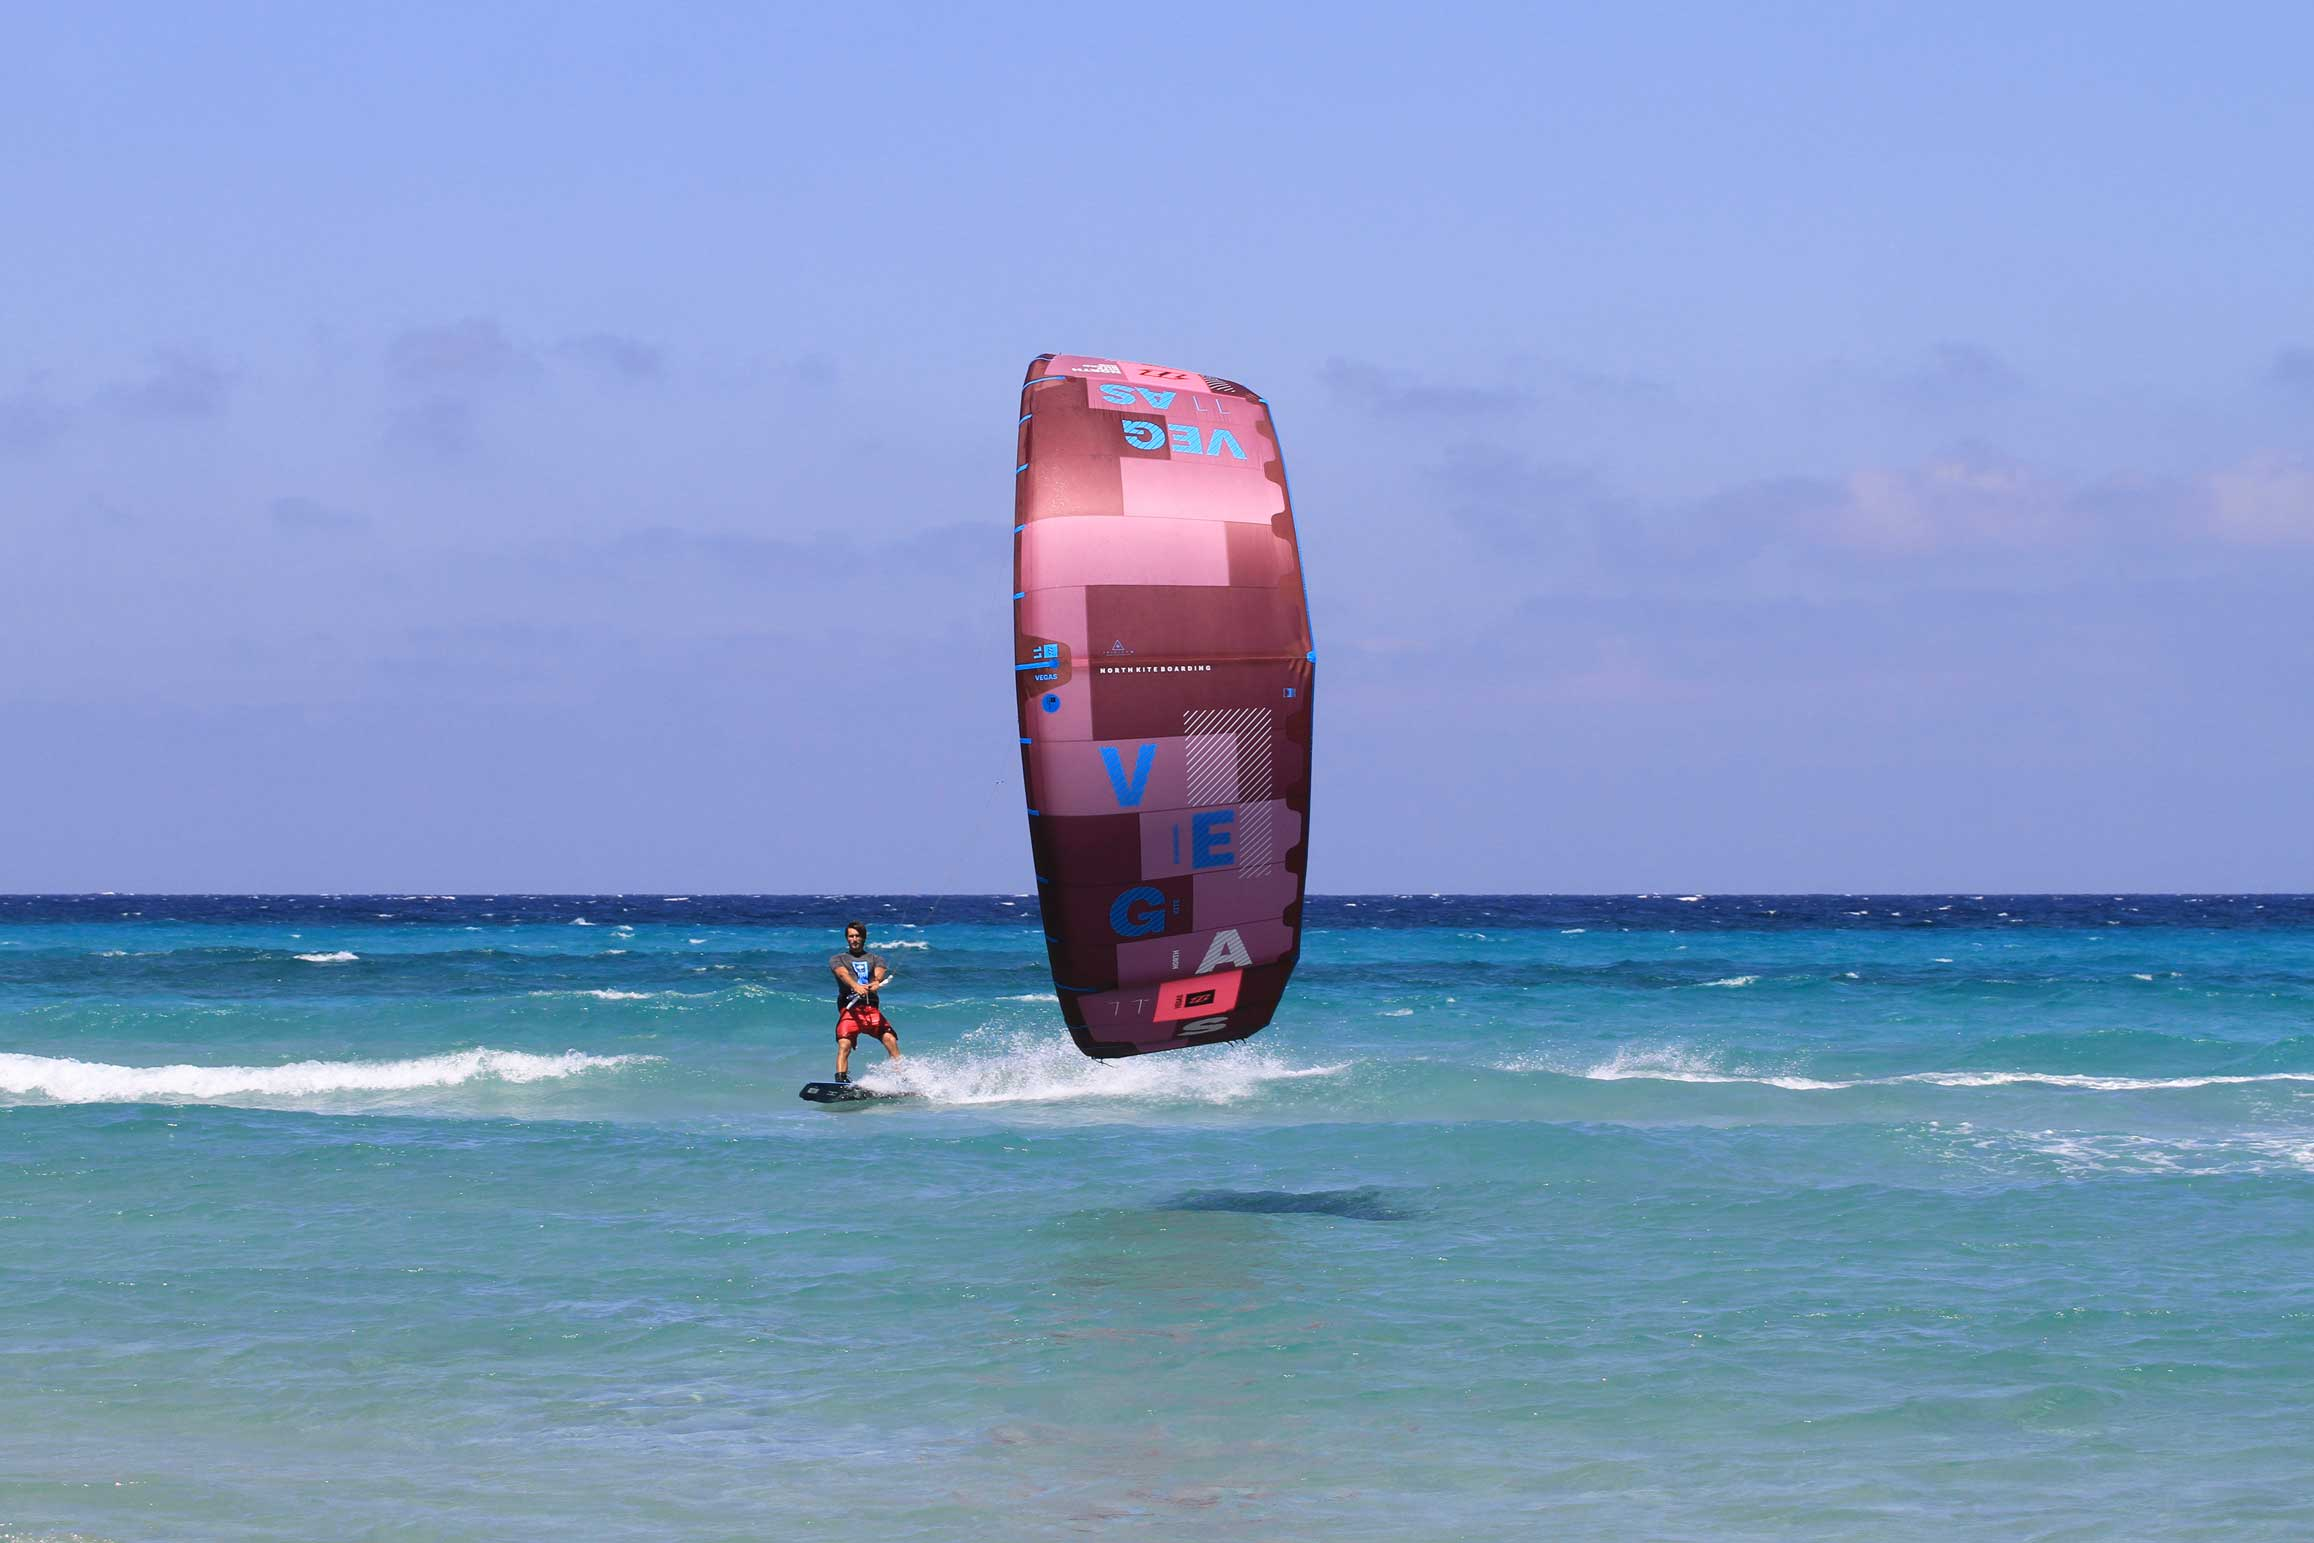 Home PKR Kitesurf slide